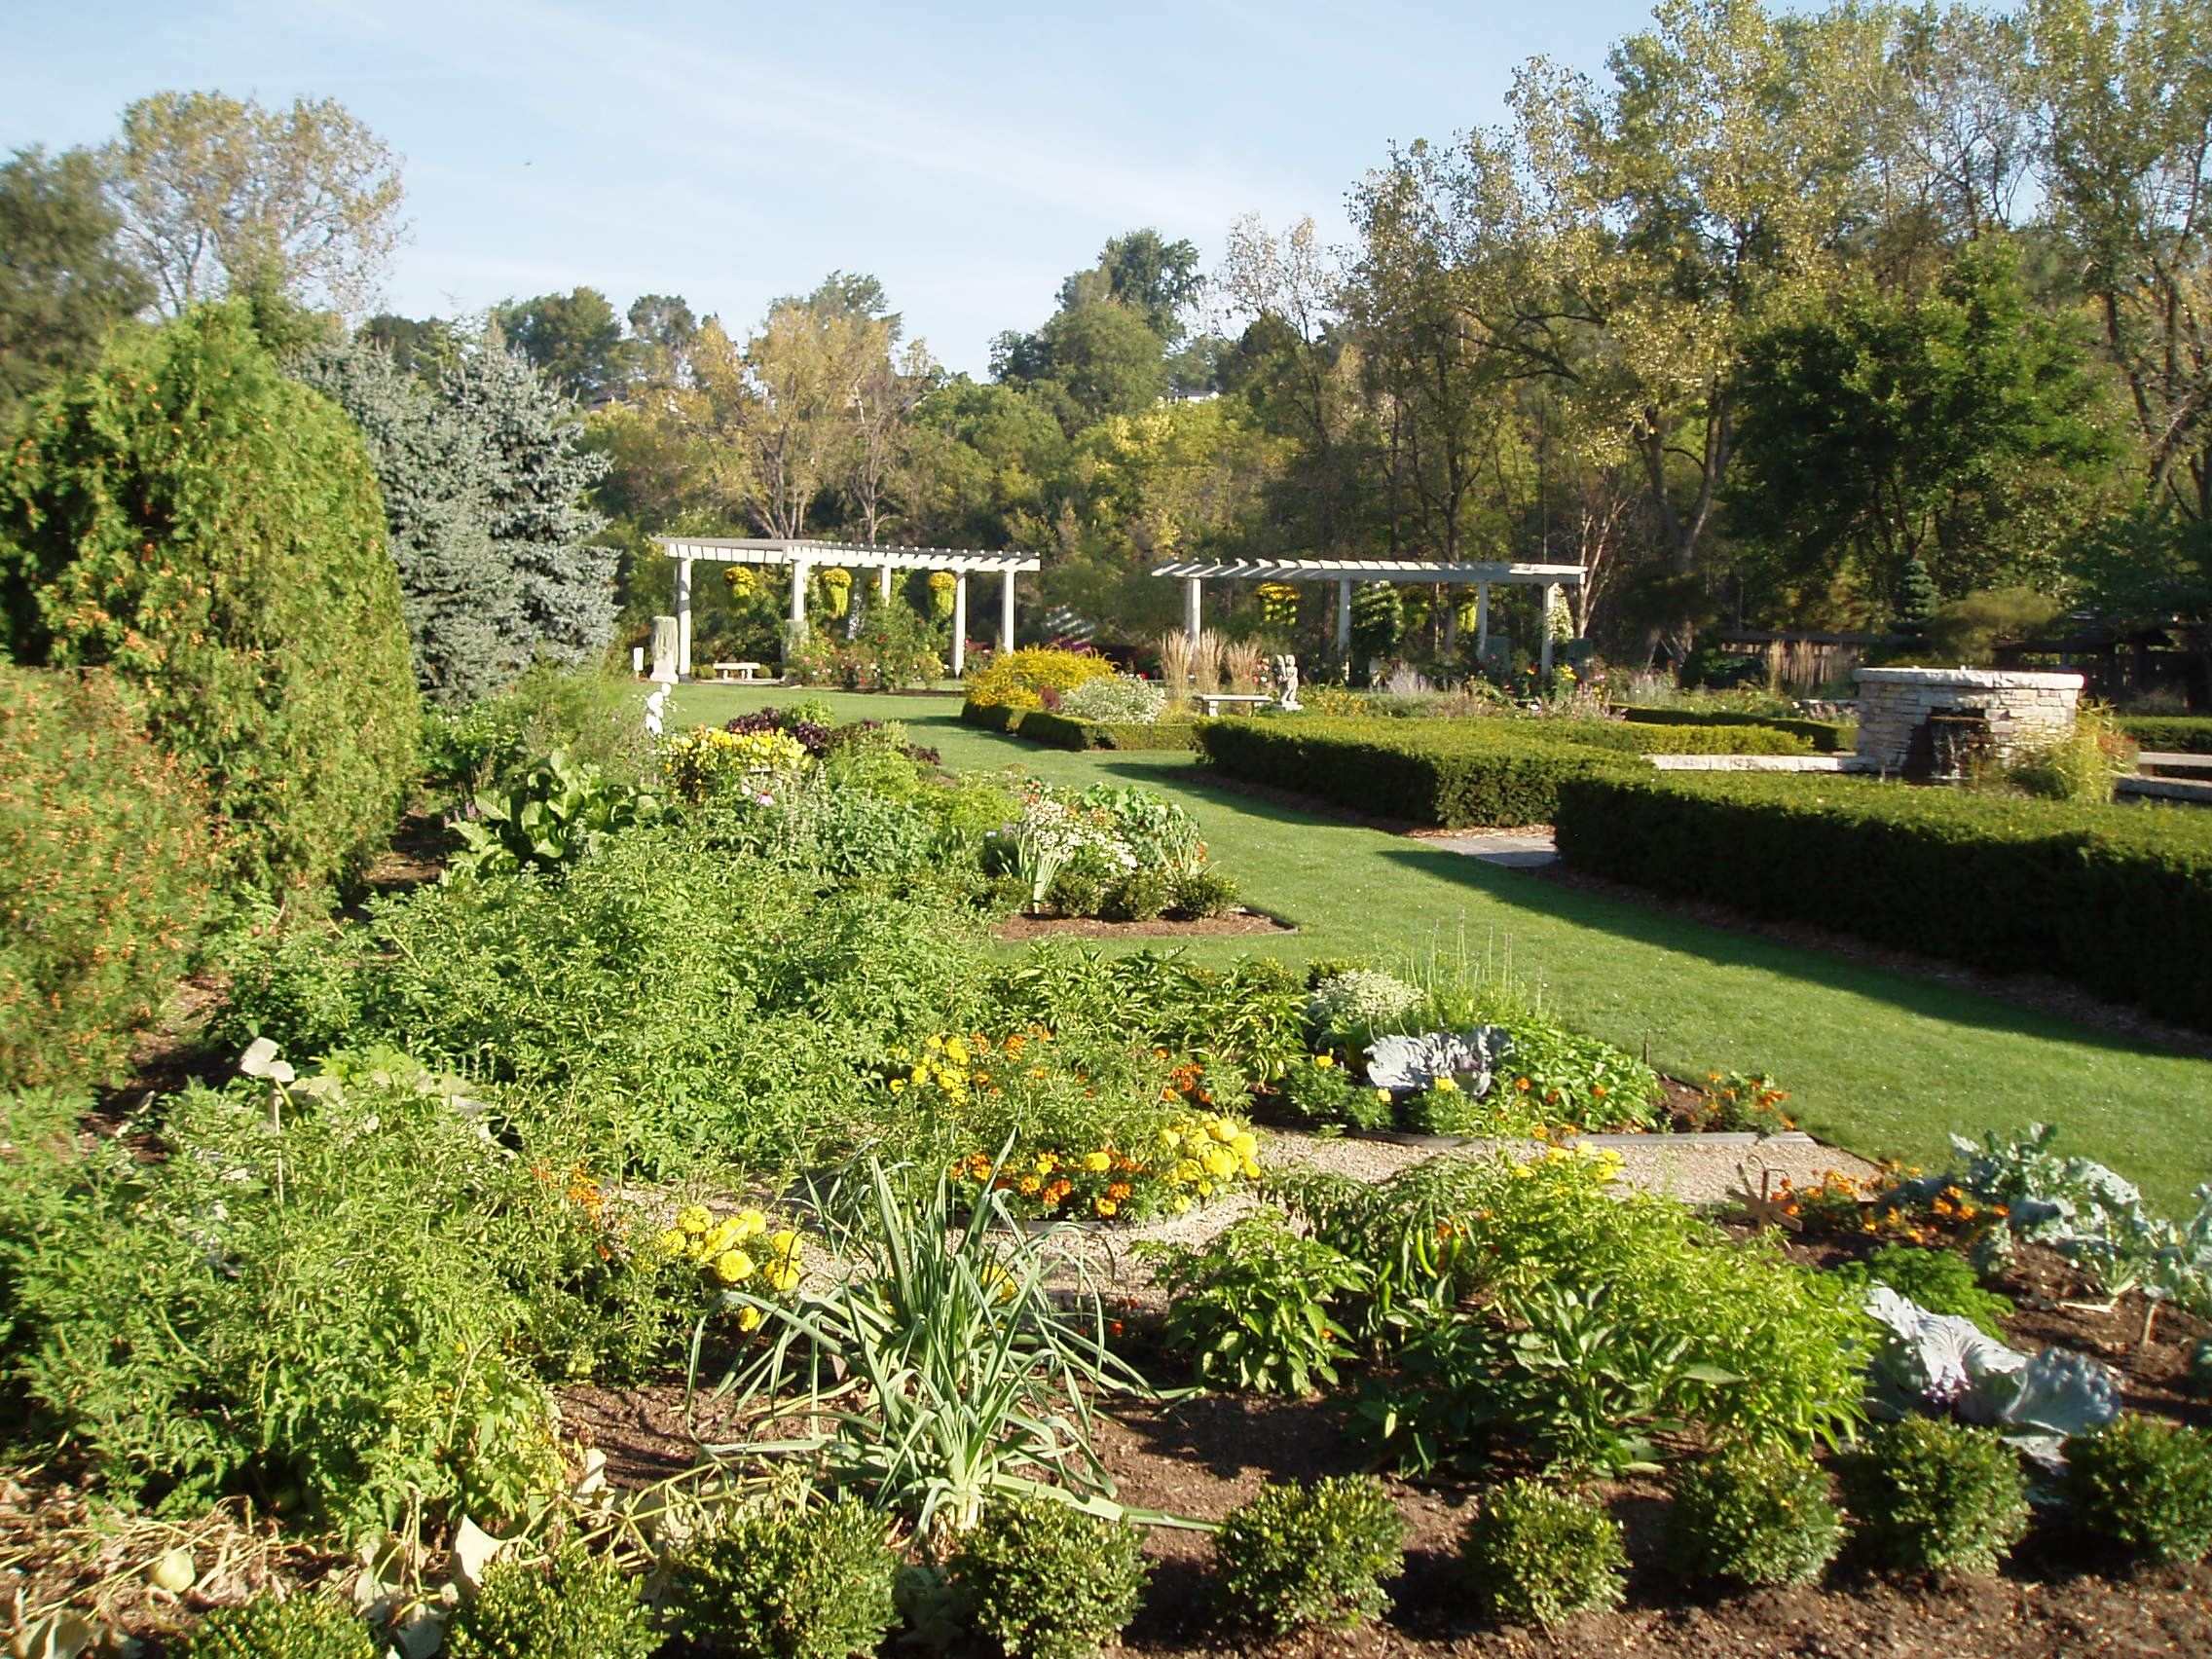 We'll tour Rotary Botanical Garden's herb garden with their director of horticulture, Mark Dwyer.